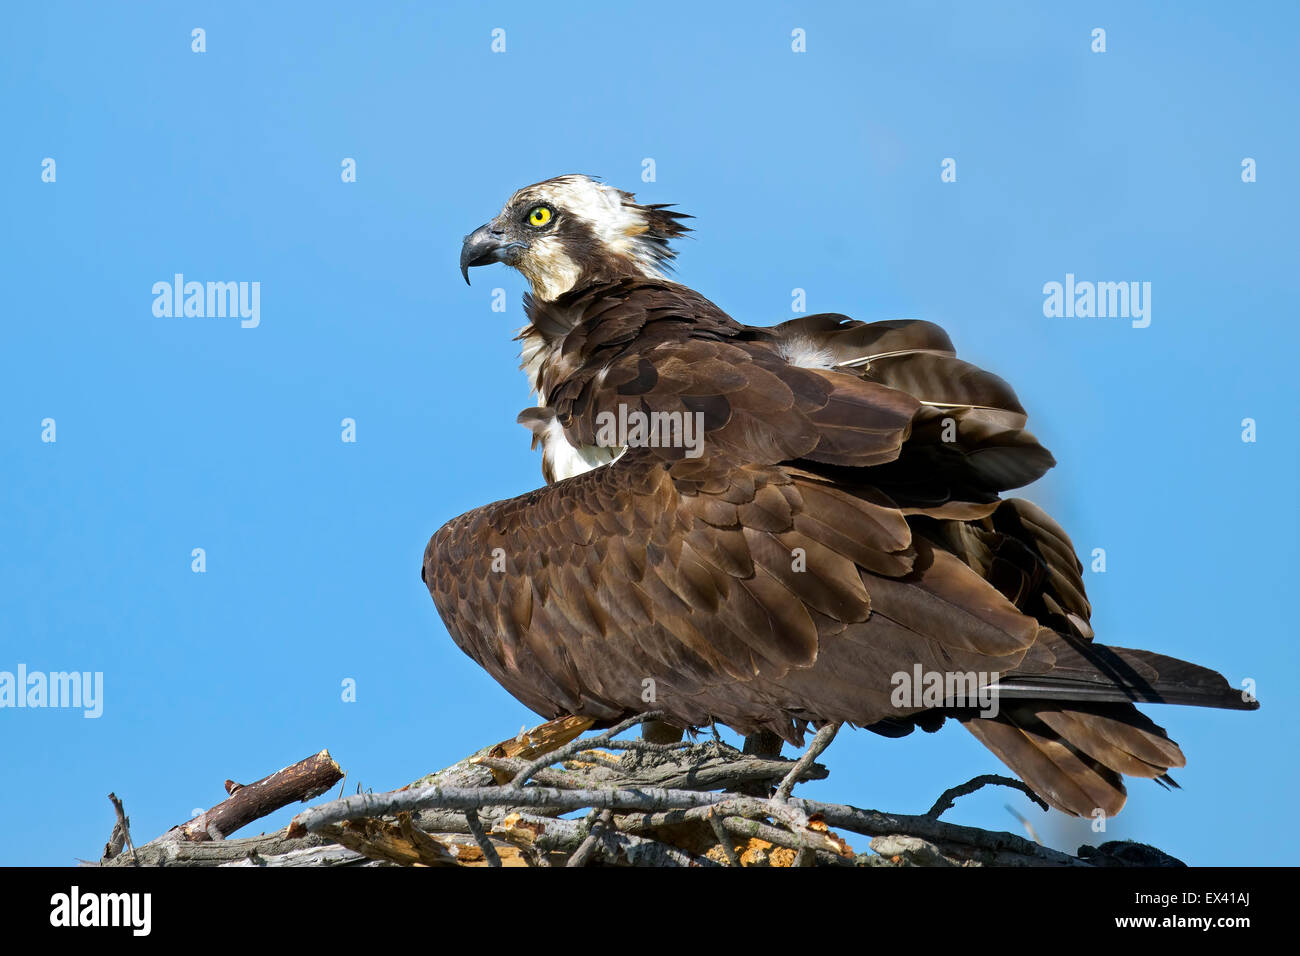 Osprey in Nest Wings Spread Protecting Chicks - Stock Image